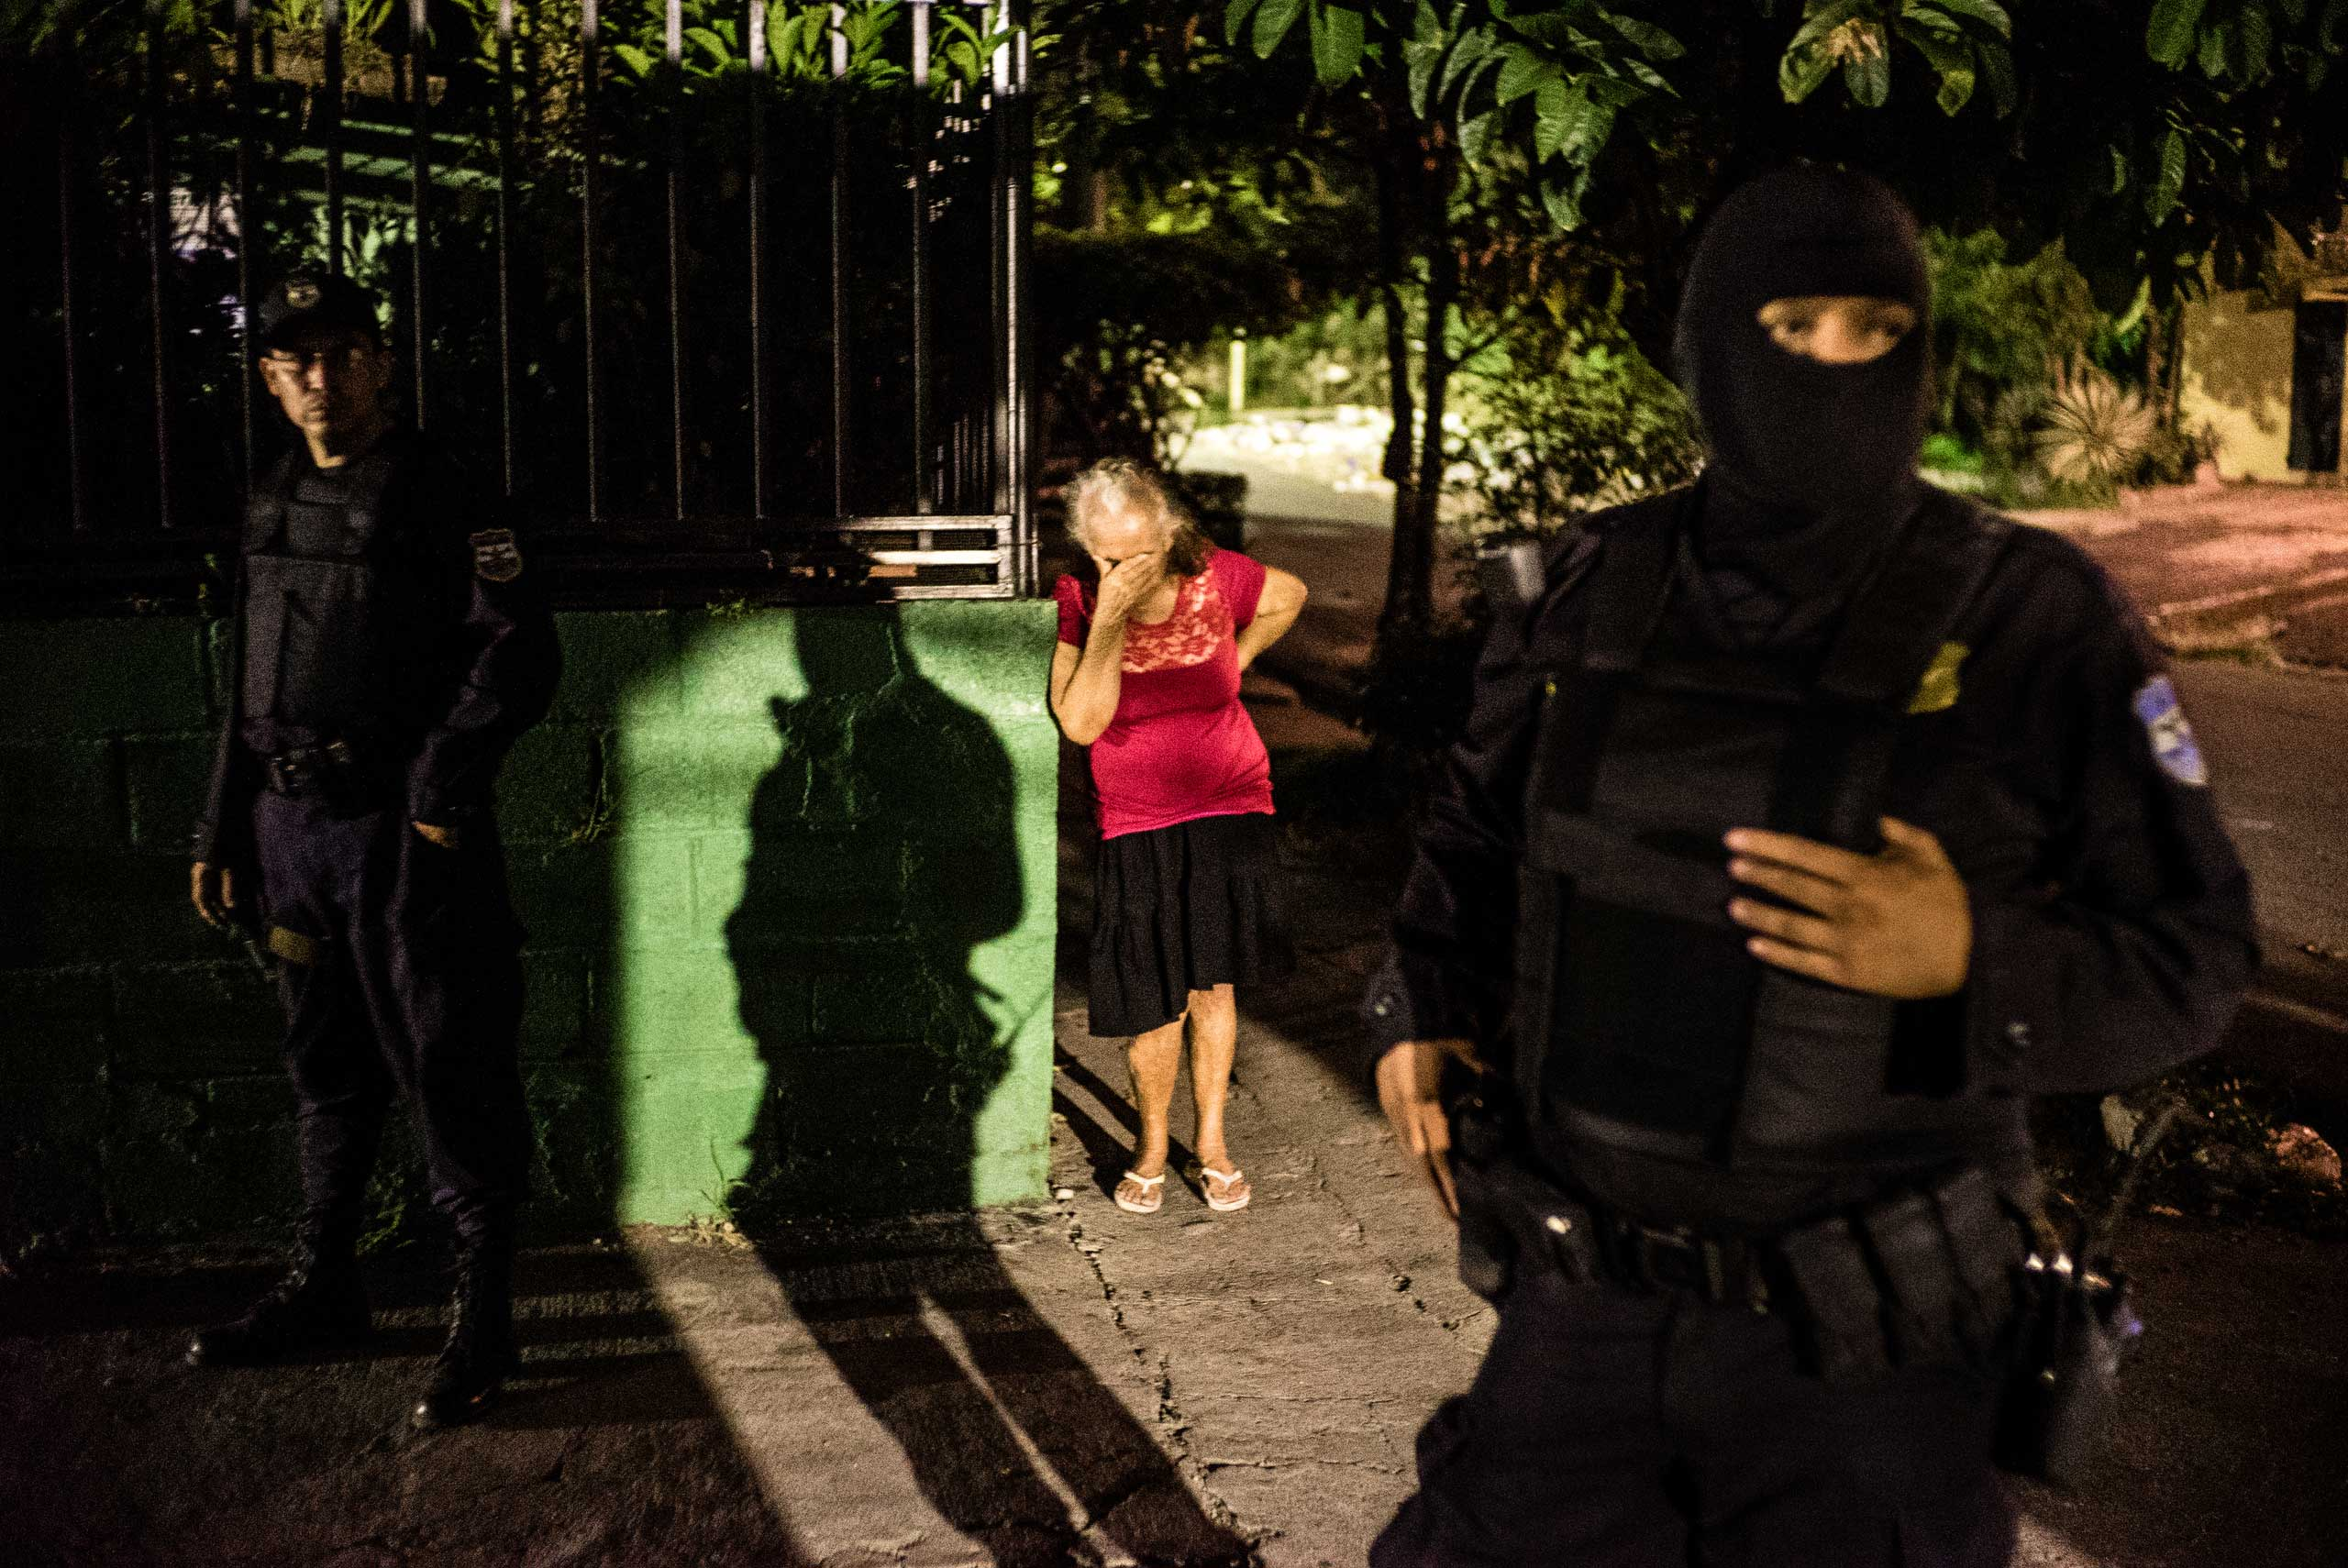 An older woman cries in the district of Soyapango while police conducts a night raid in search of Mara Salvatrucha gang (MS 13) members, San Salvador, on June 11, 2015.